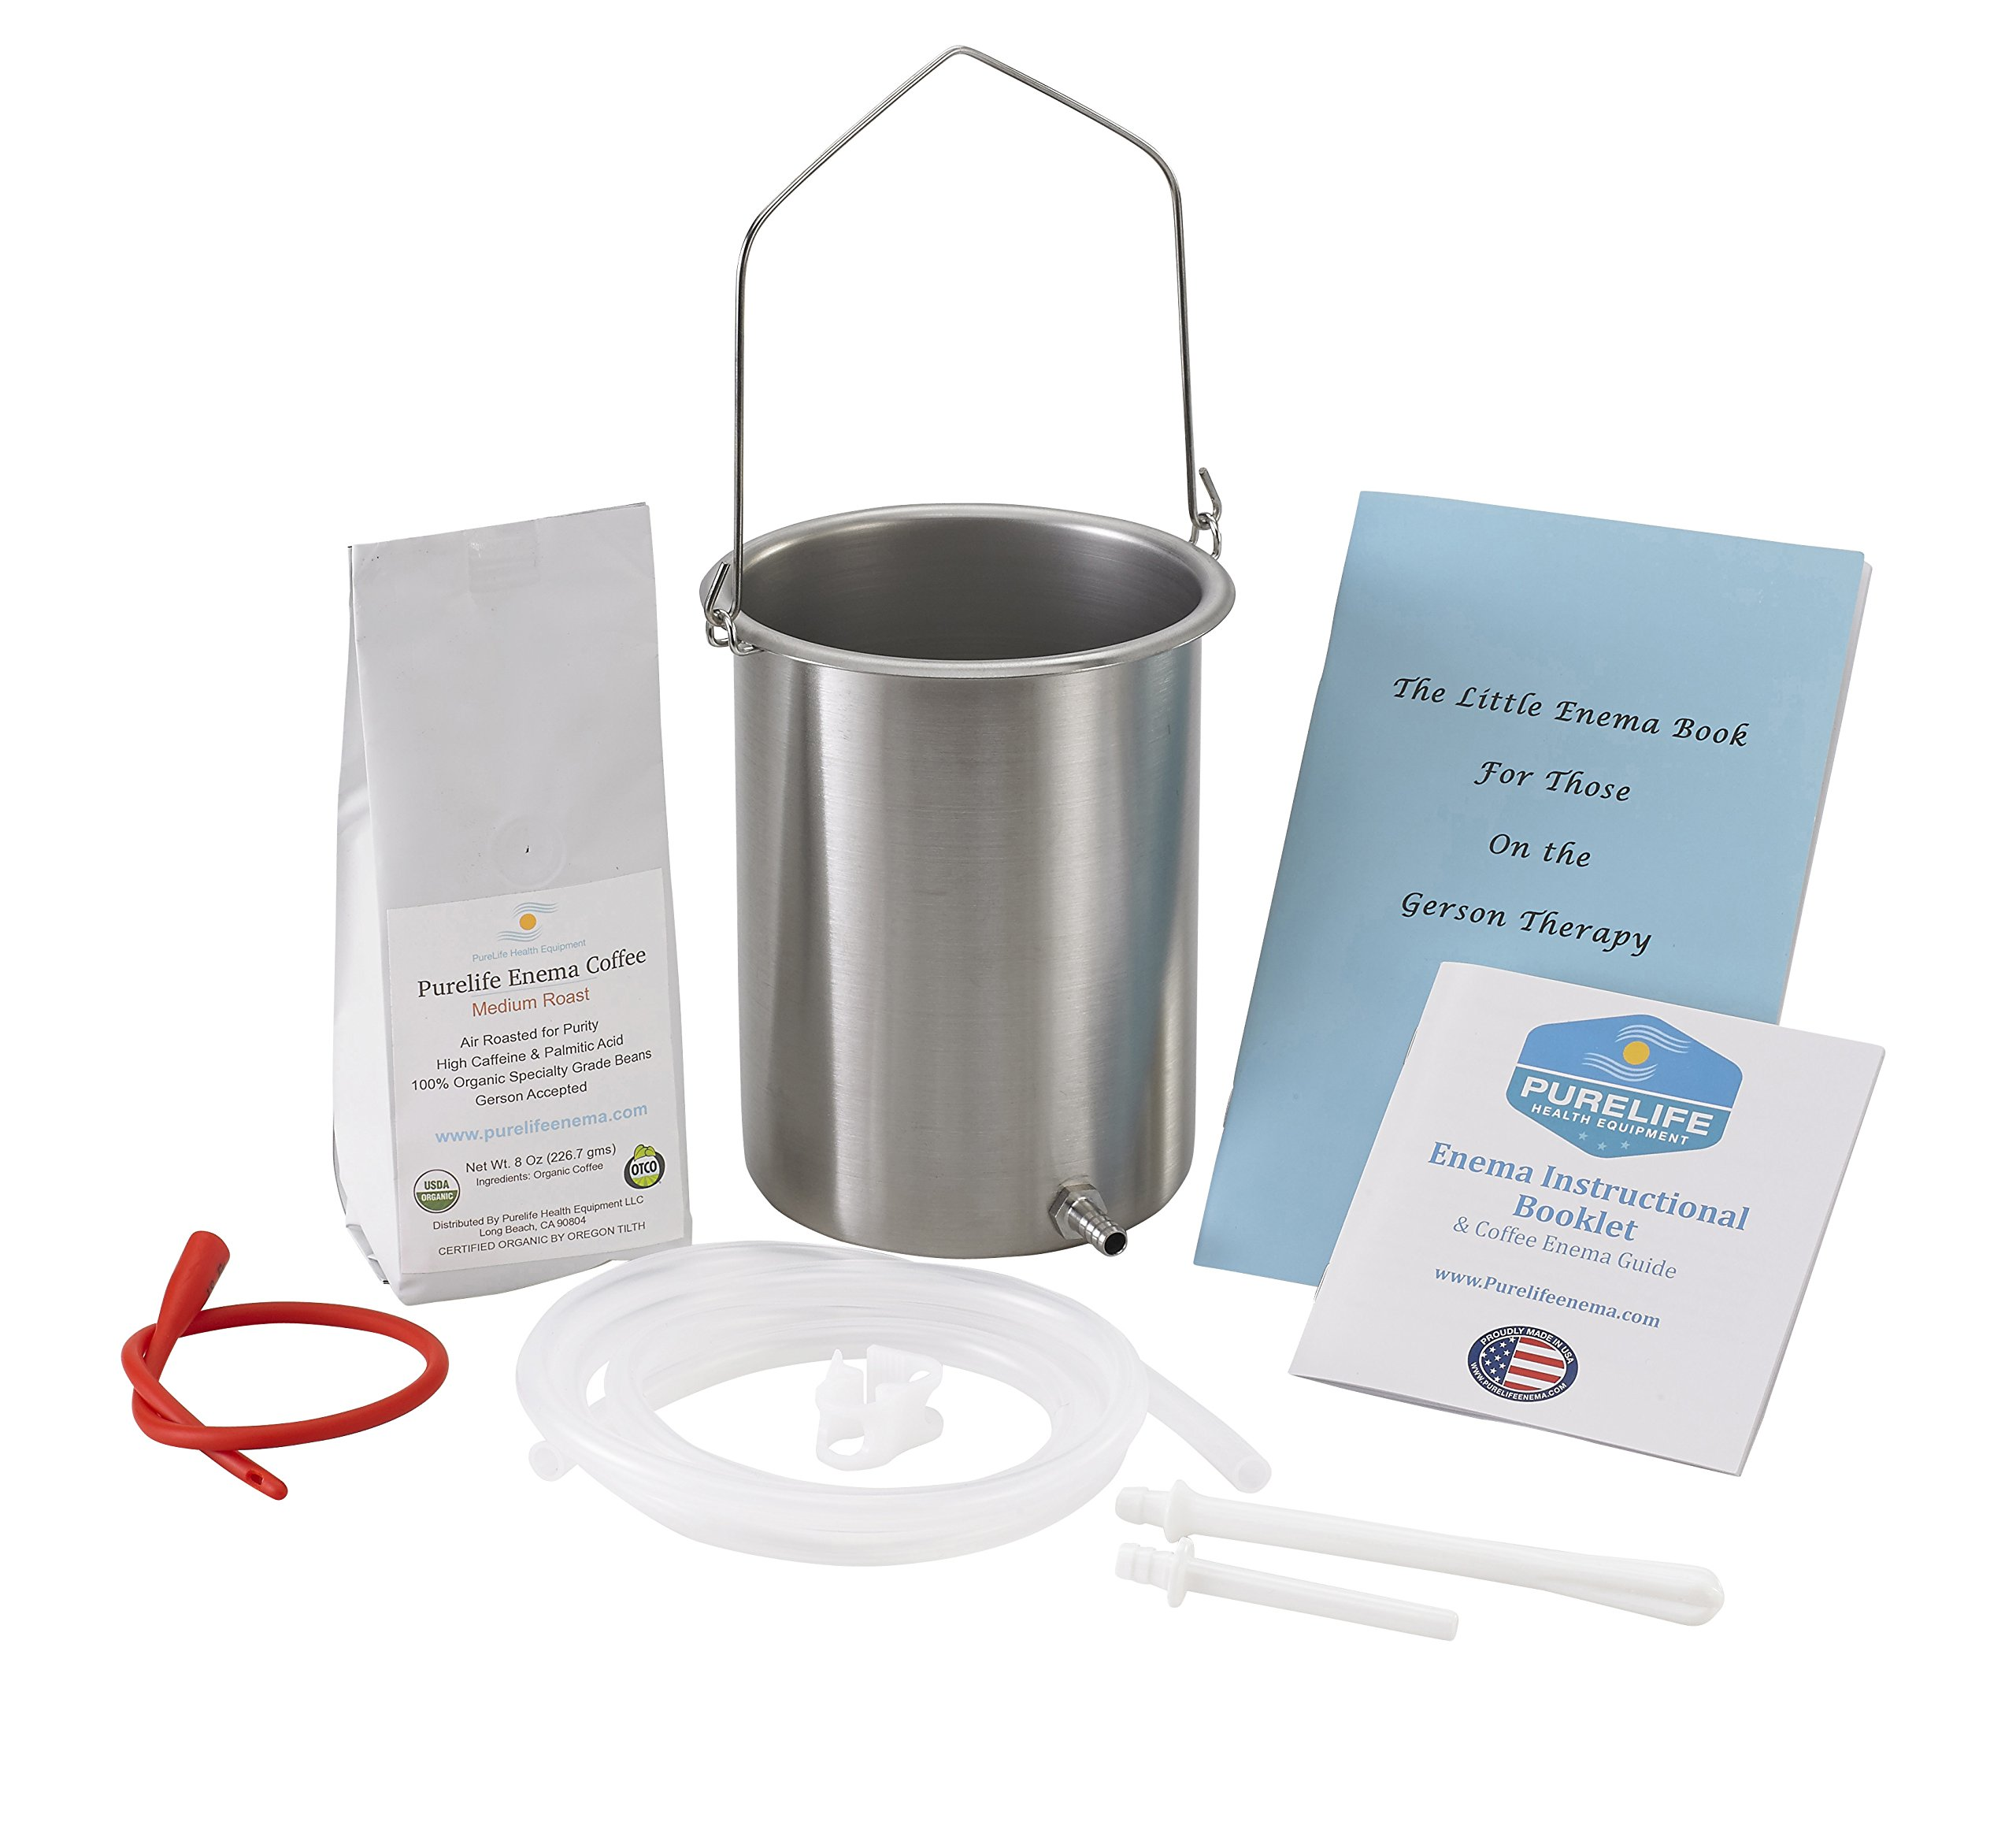 PureLife Coffee Enema Kit / Made in USA/ 304 Food Grade Stainless Steel Enema Bucket/ Medical Grade Silicone Tubing/ 1/2 Lb Organic Air Roasted Coffee/ Doctors #1 Choice